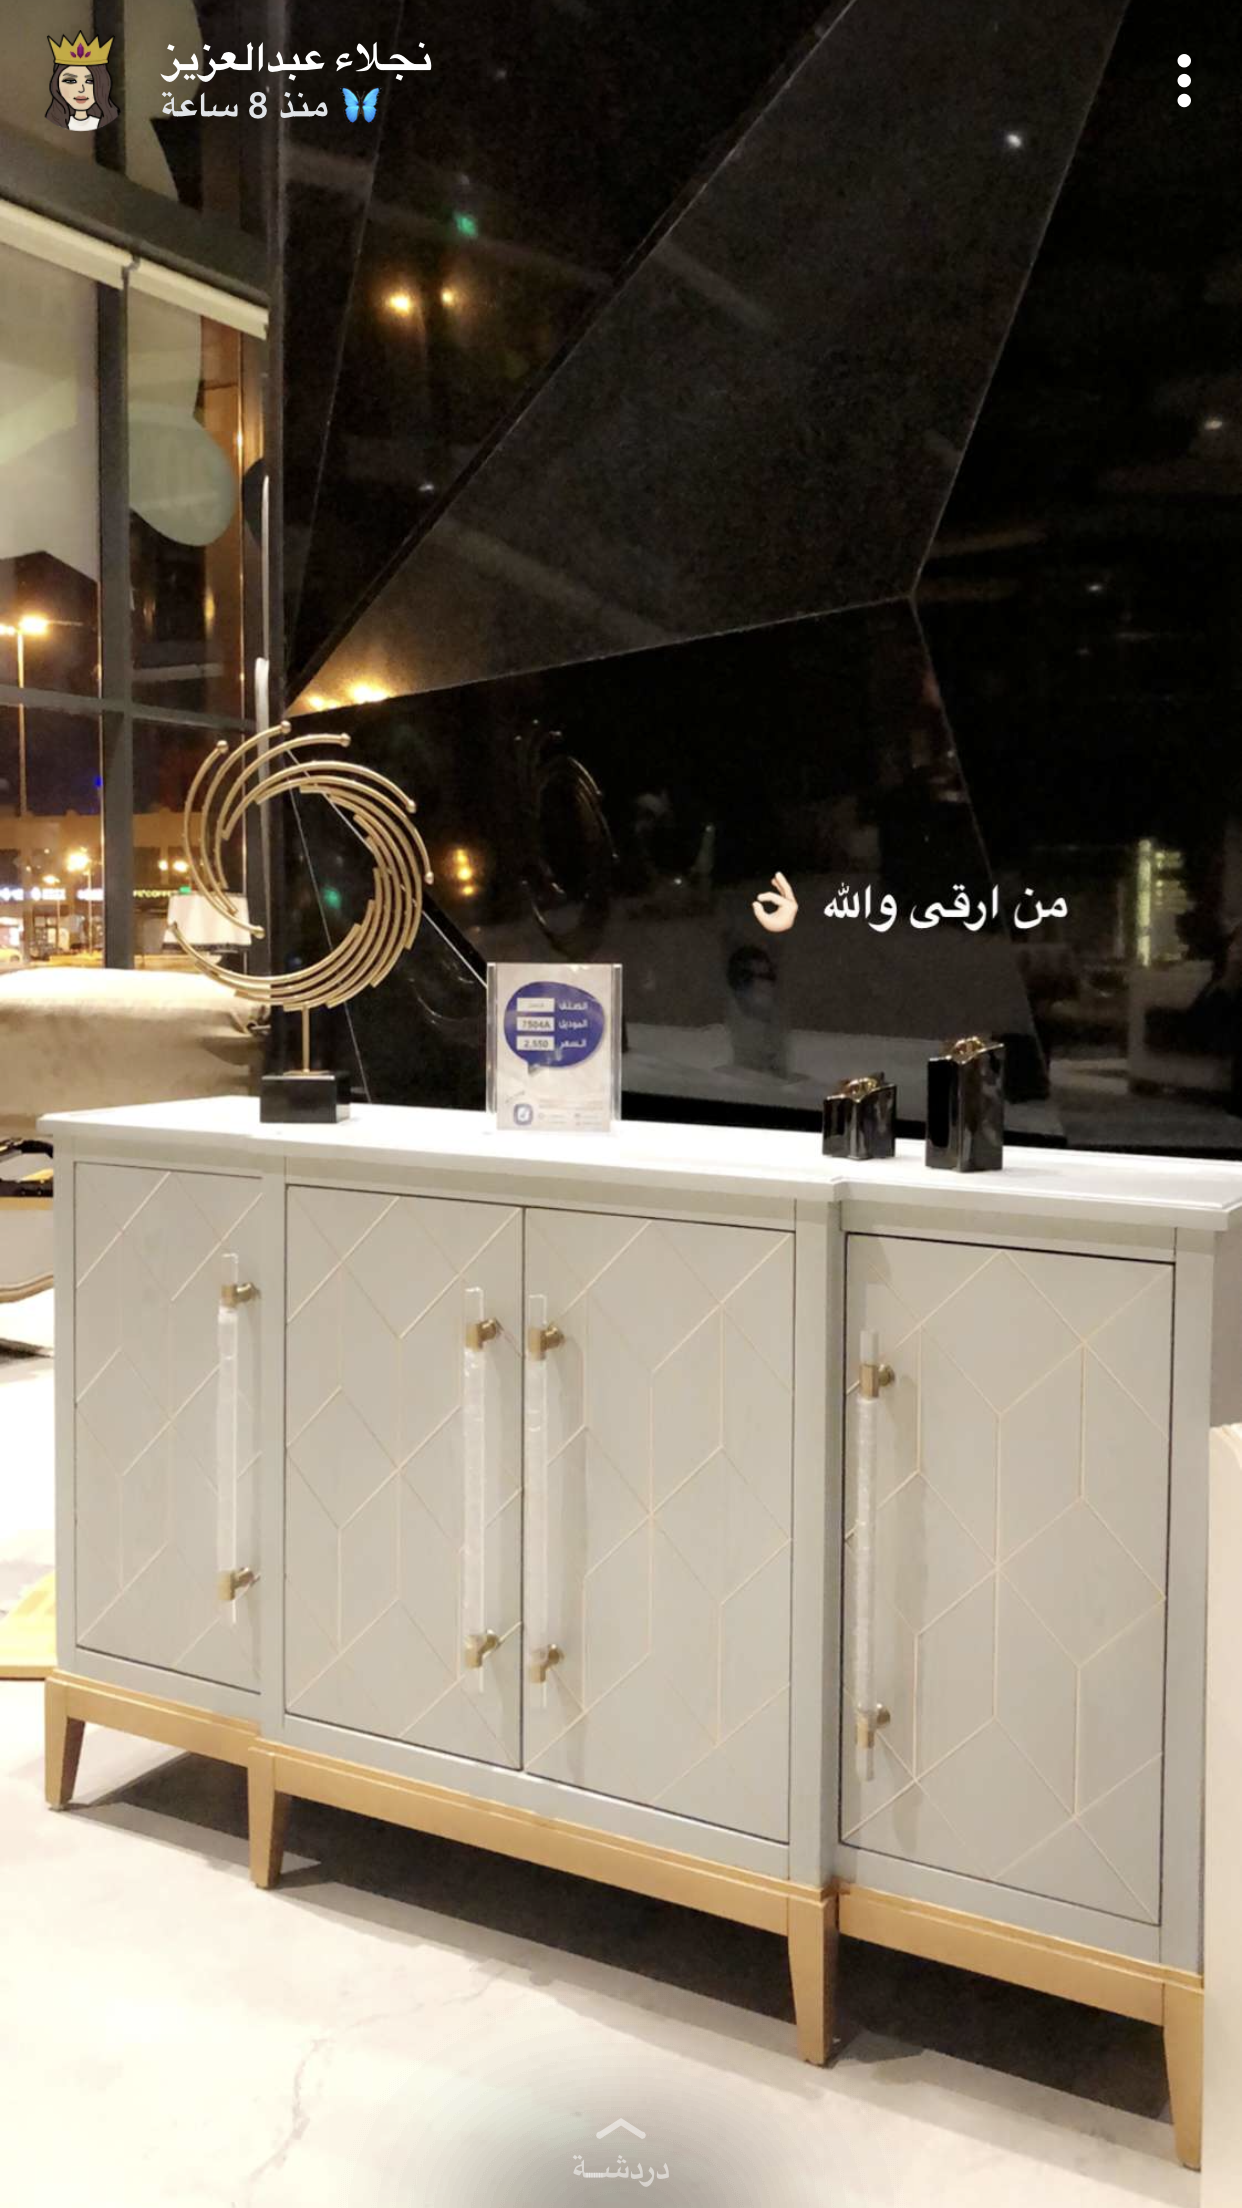 Pin By Ftoo On بيت اهلي Decor Home Decor Furniture